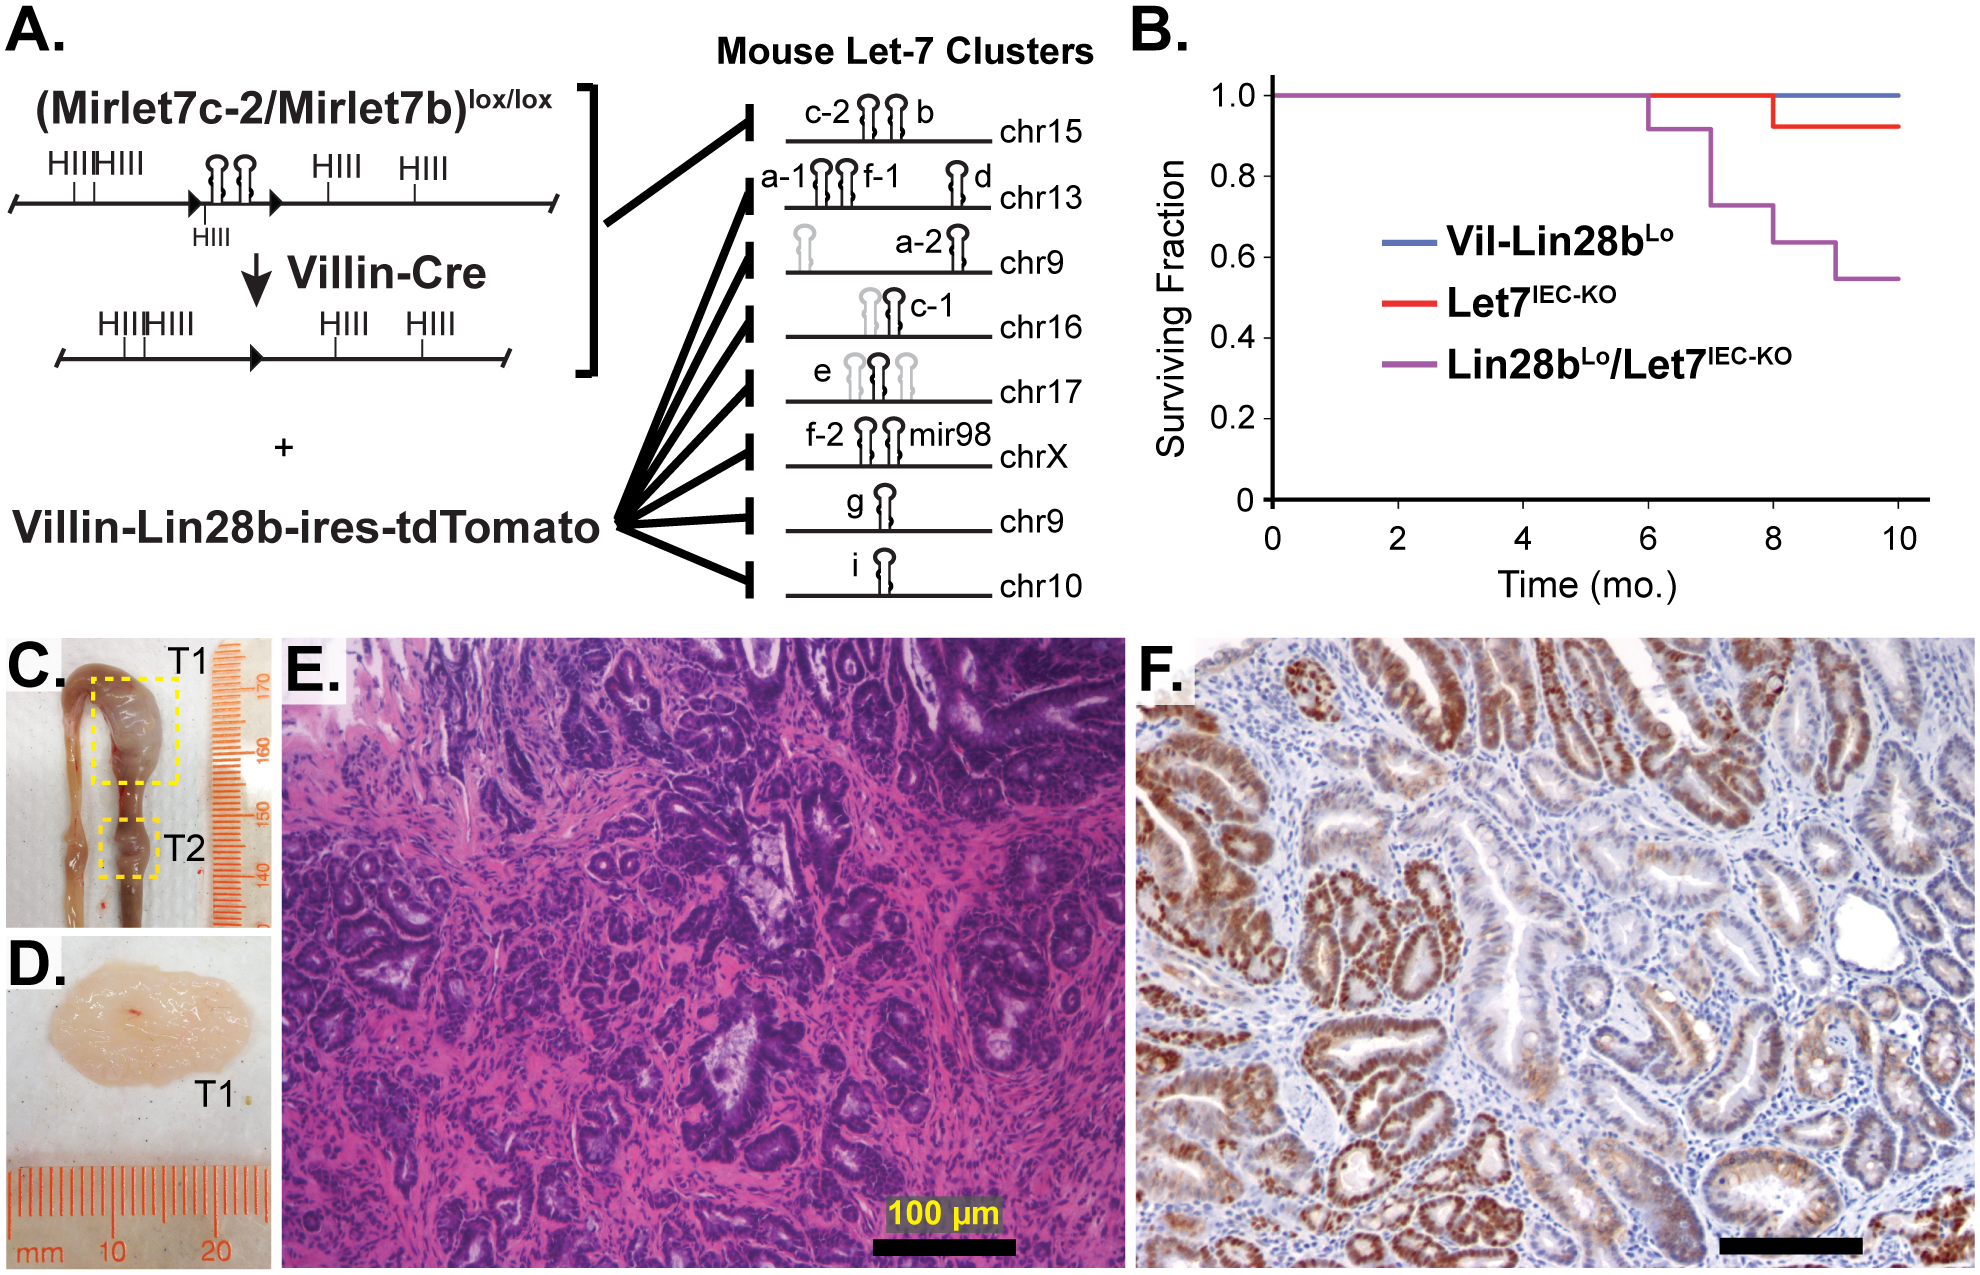 Comprehensive depletion of all Let-7 miRNAs leads to the development of intestinal adenocarcinomas.